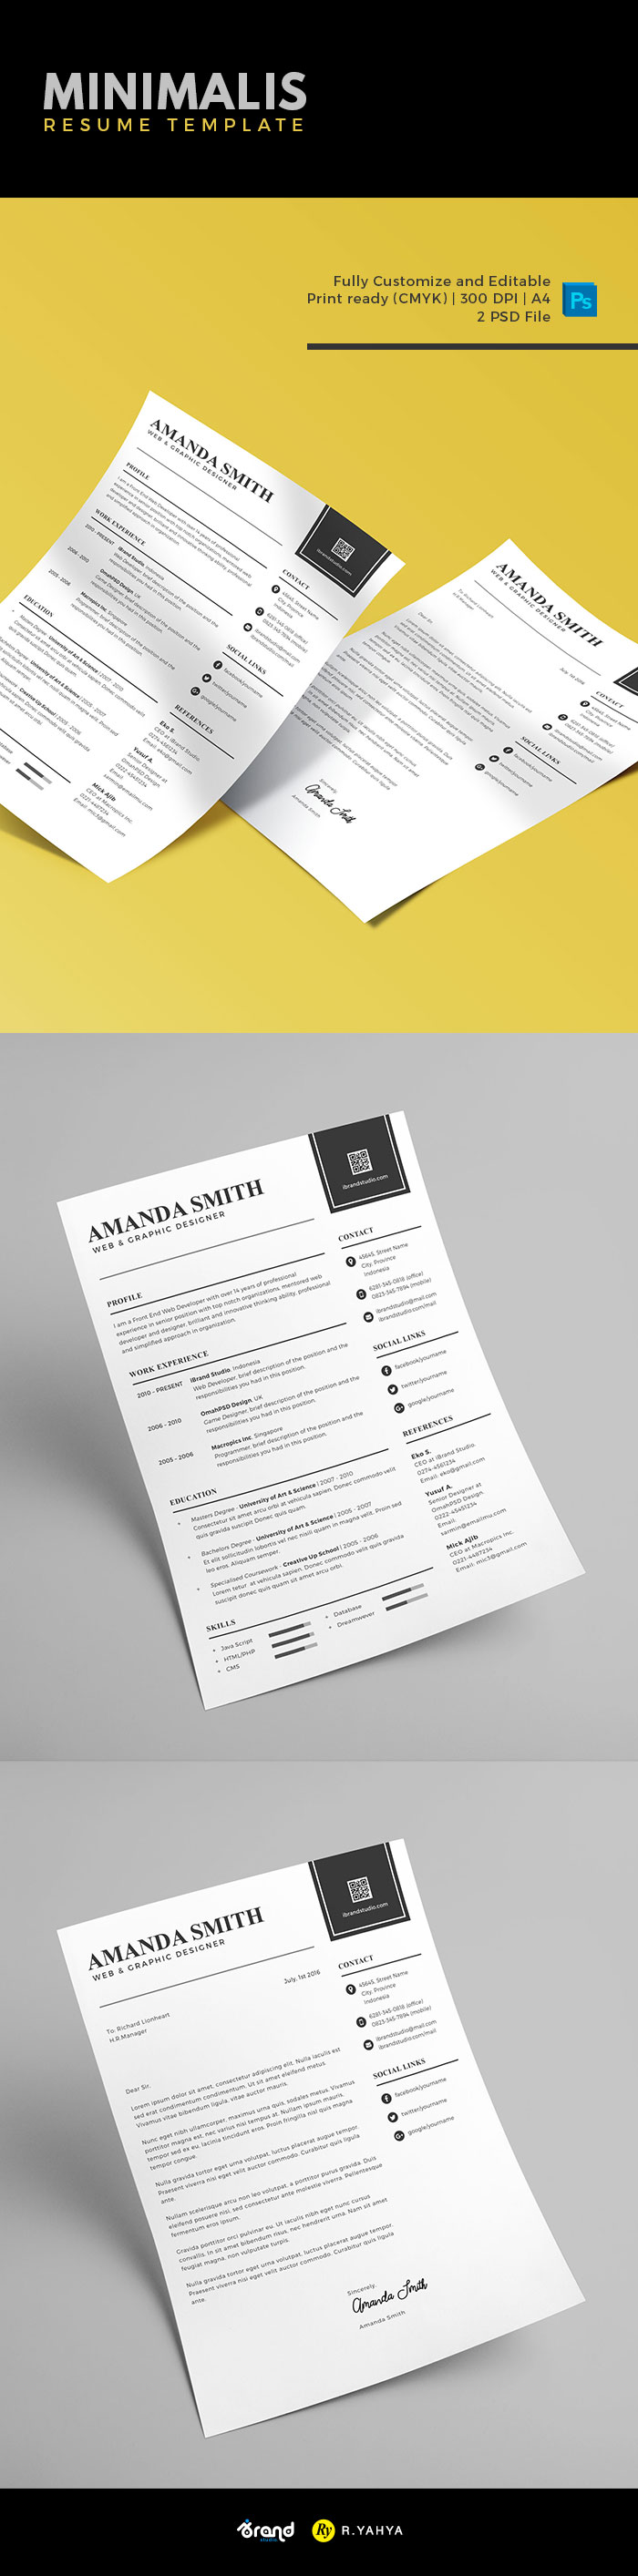 free minimalis resume cover letter